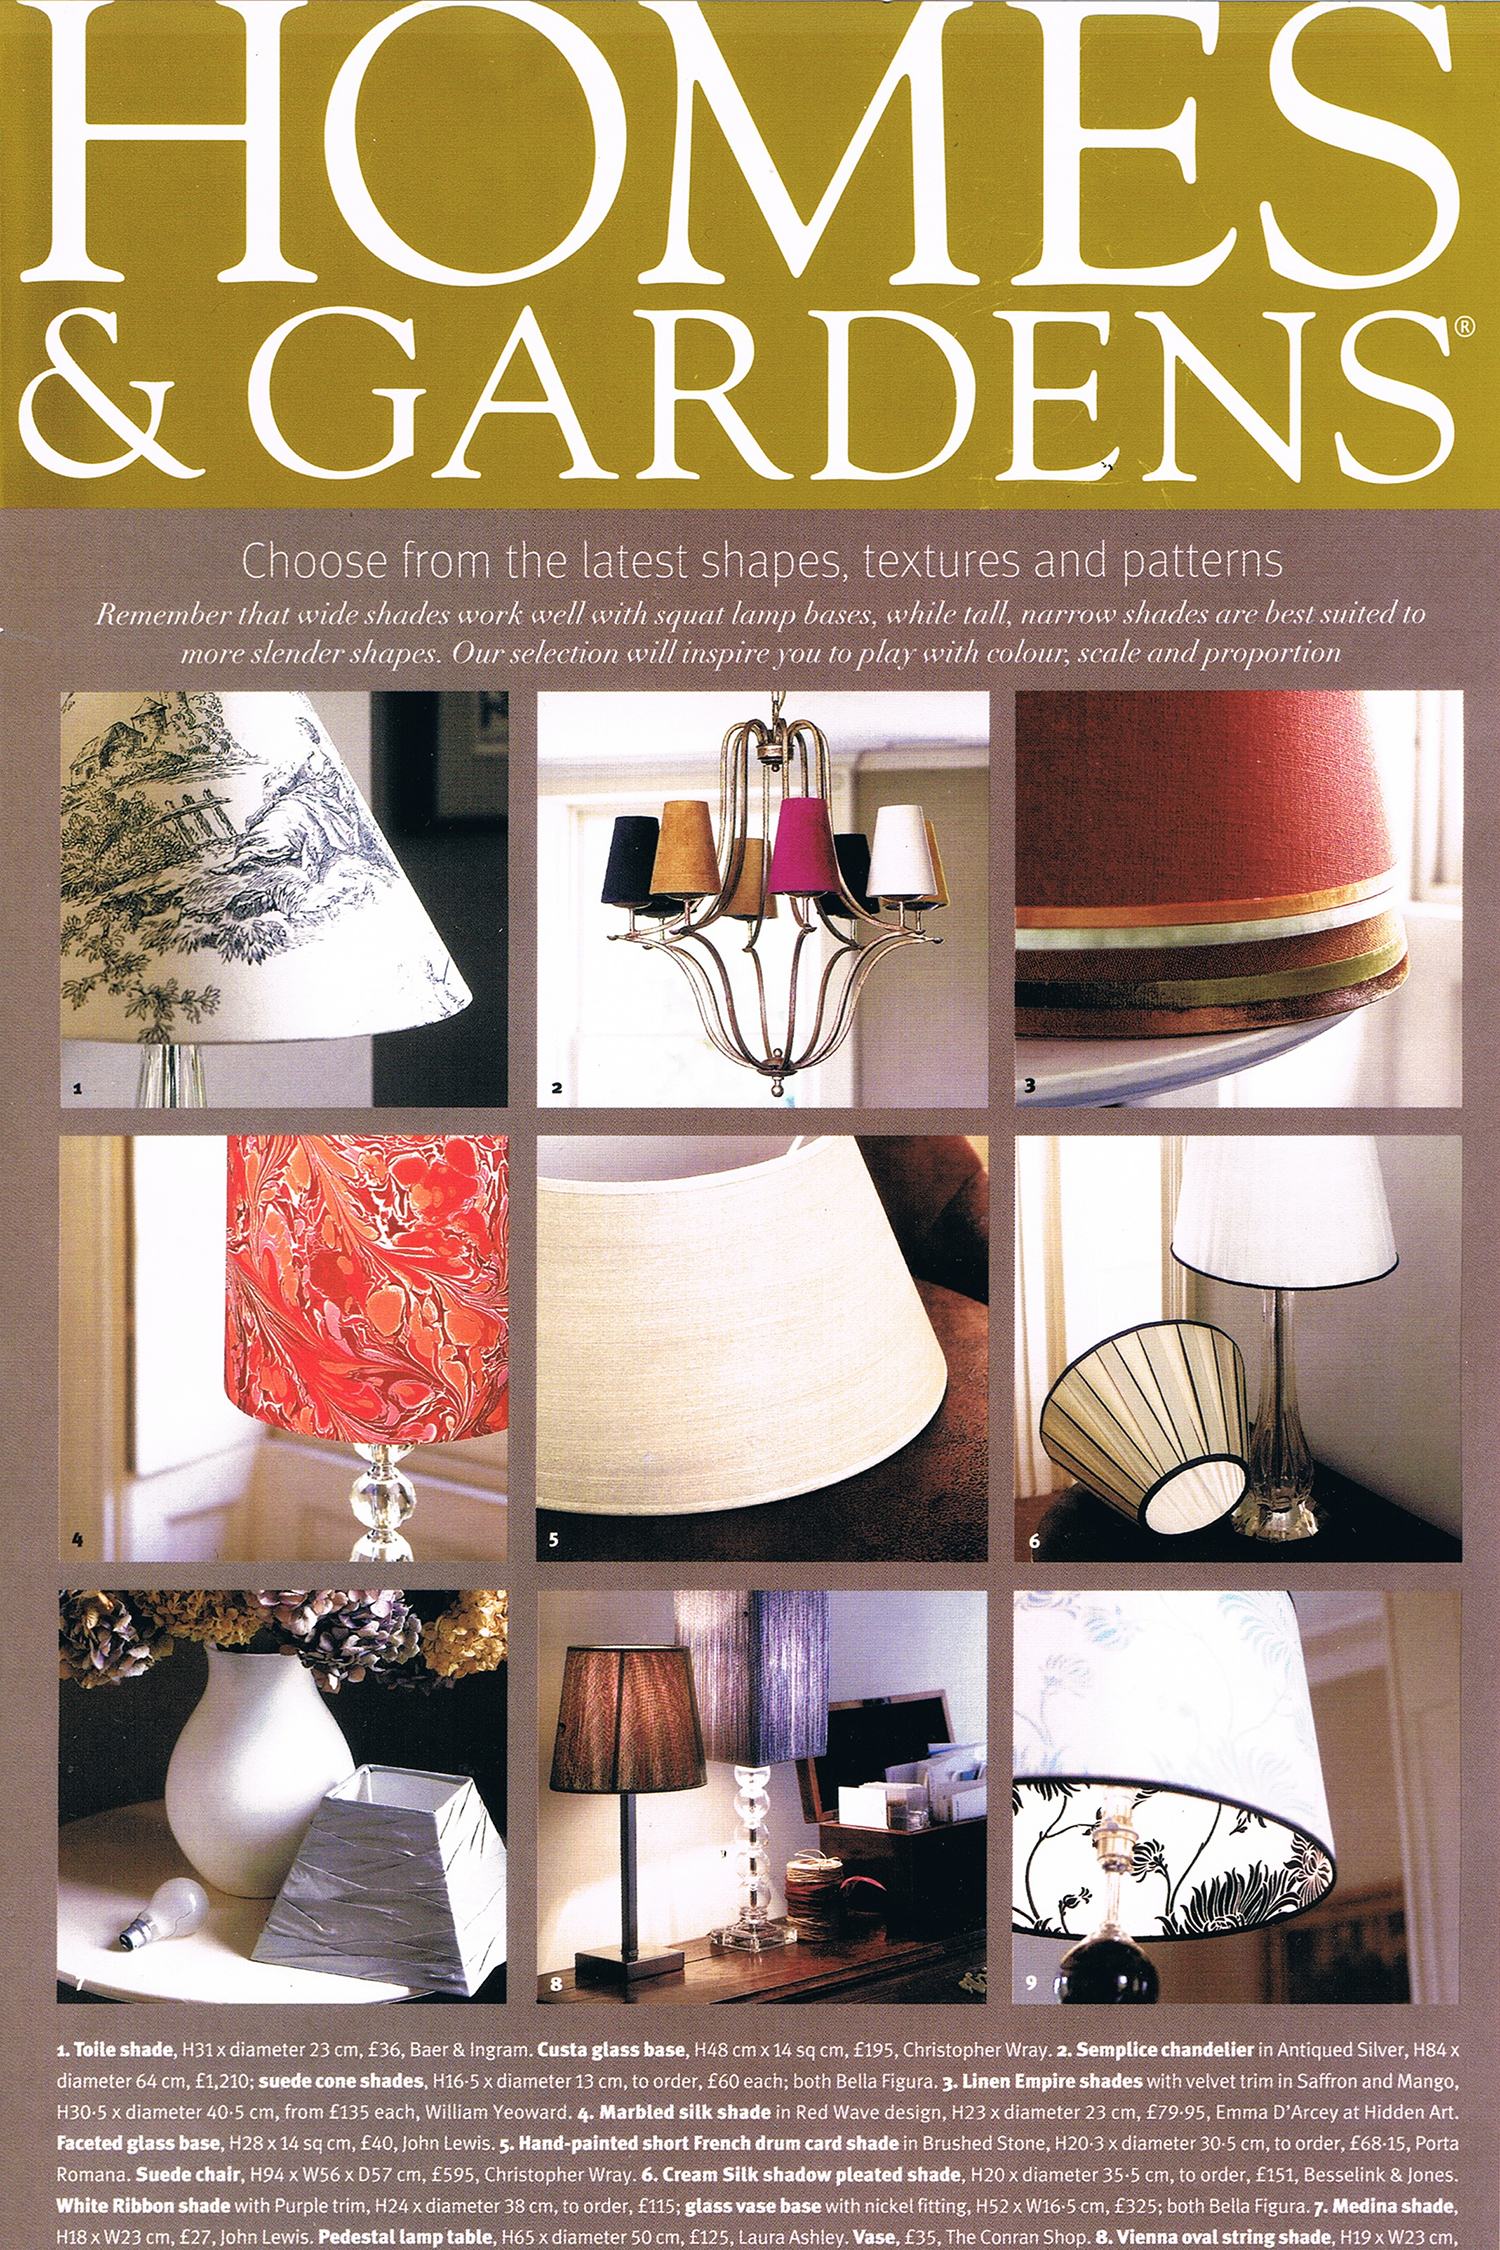 homes and gardens web ready.jpg